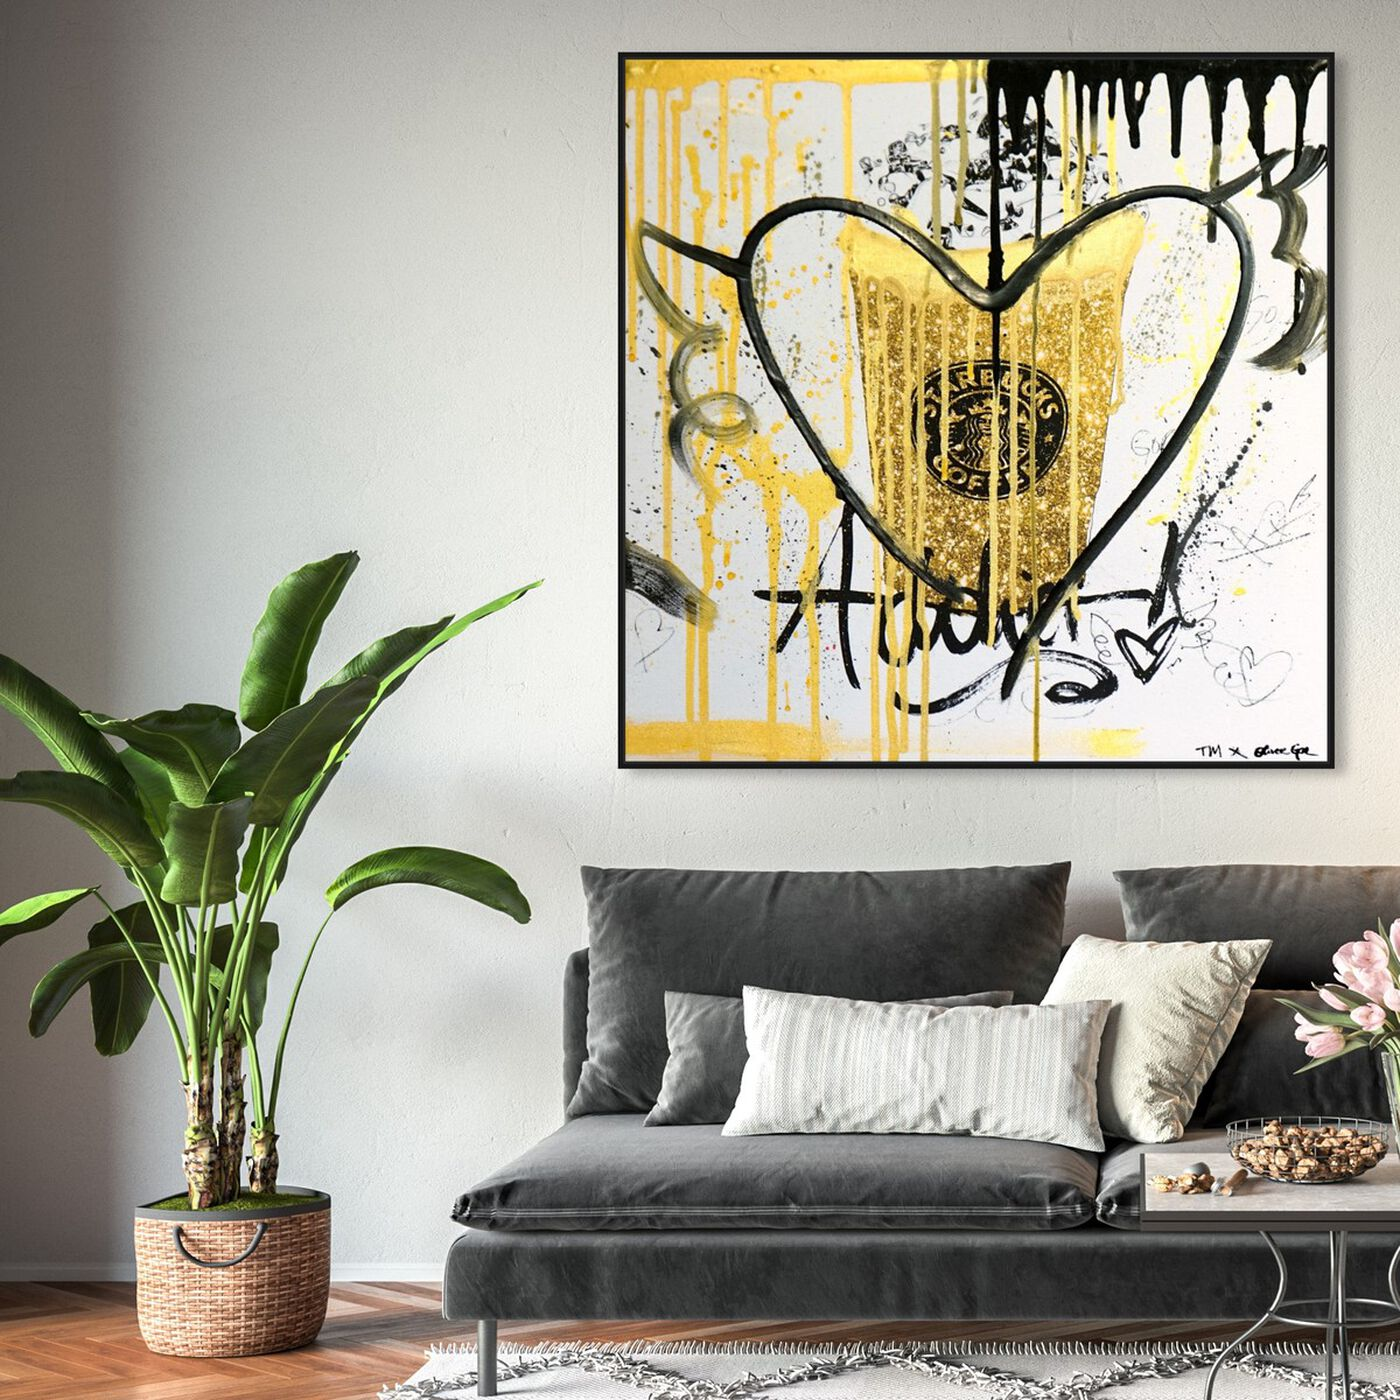 Hanging view of Coffee Fuel Remix featuring drinks and spirits and coffee art.